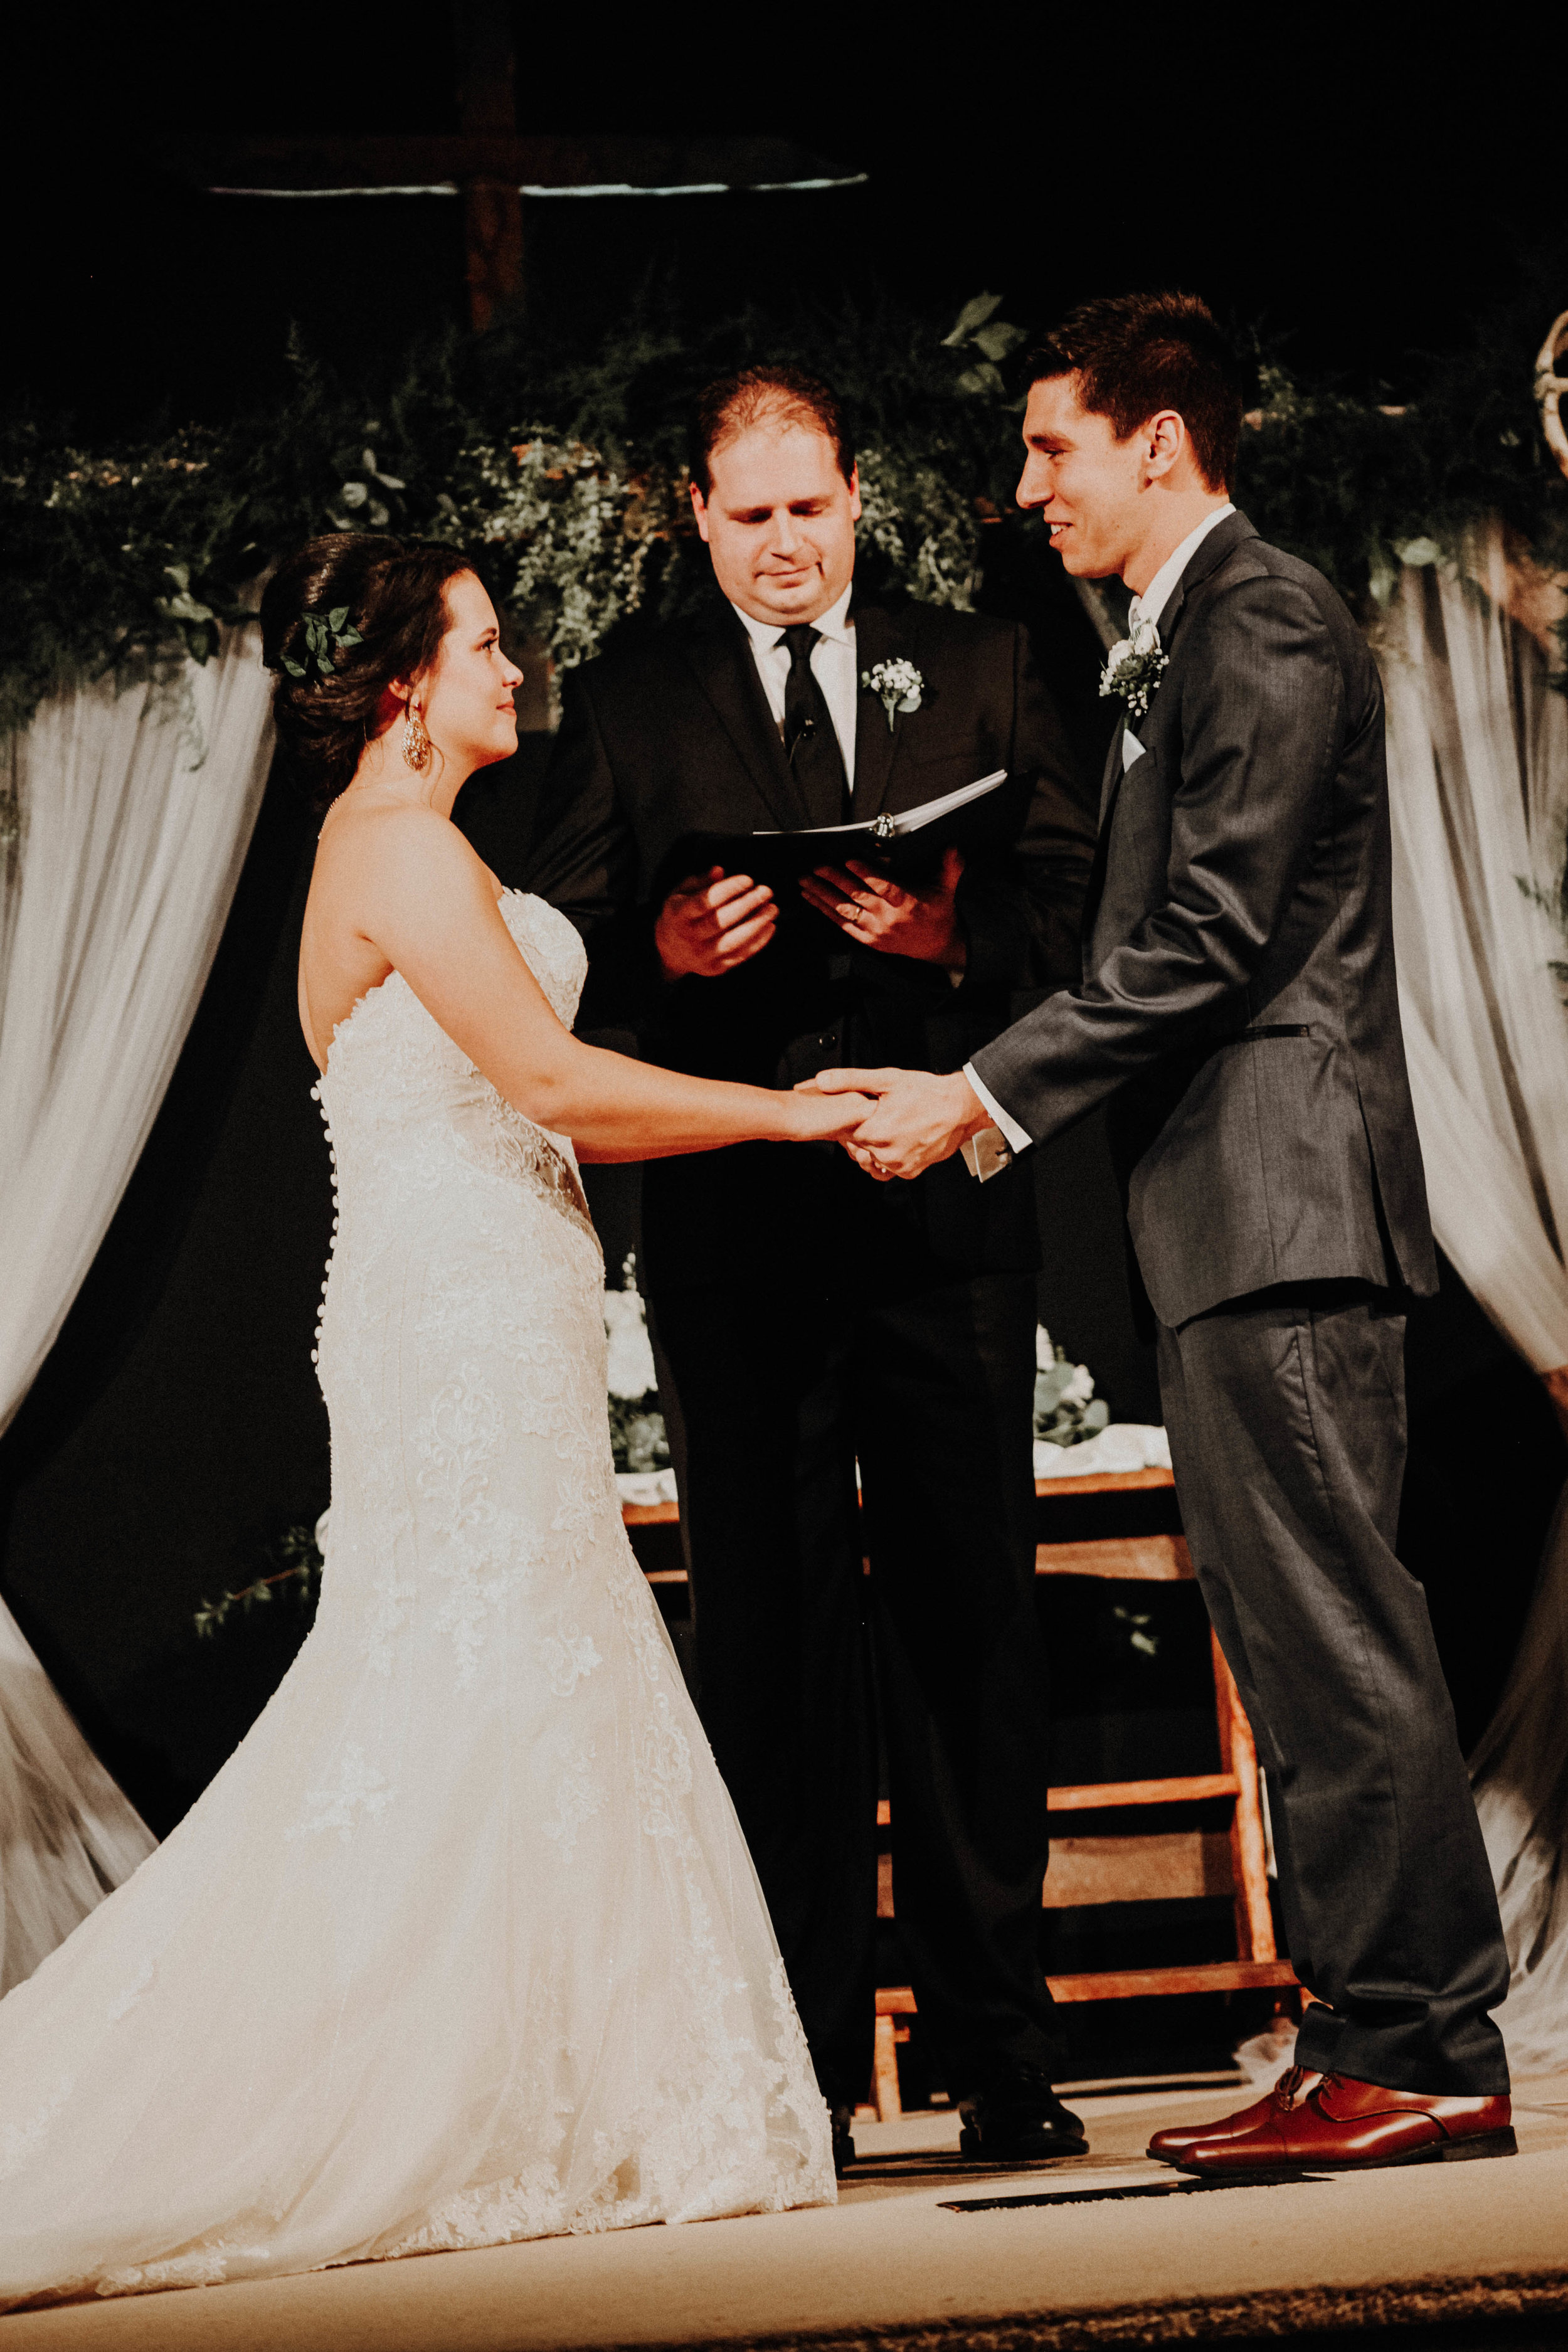 wedding (36 of 38).jpg